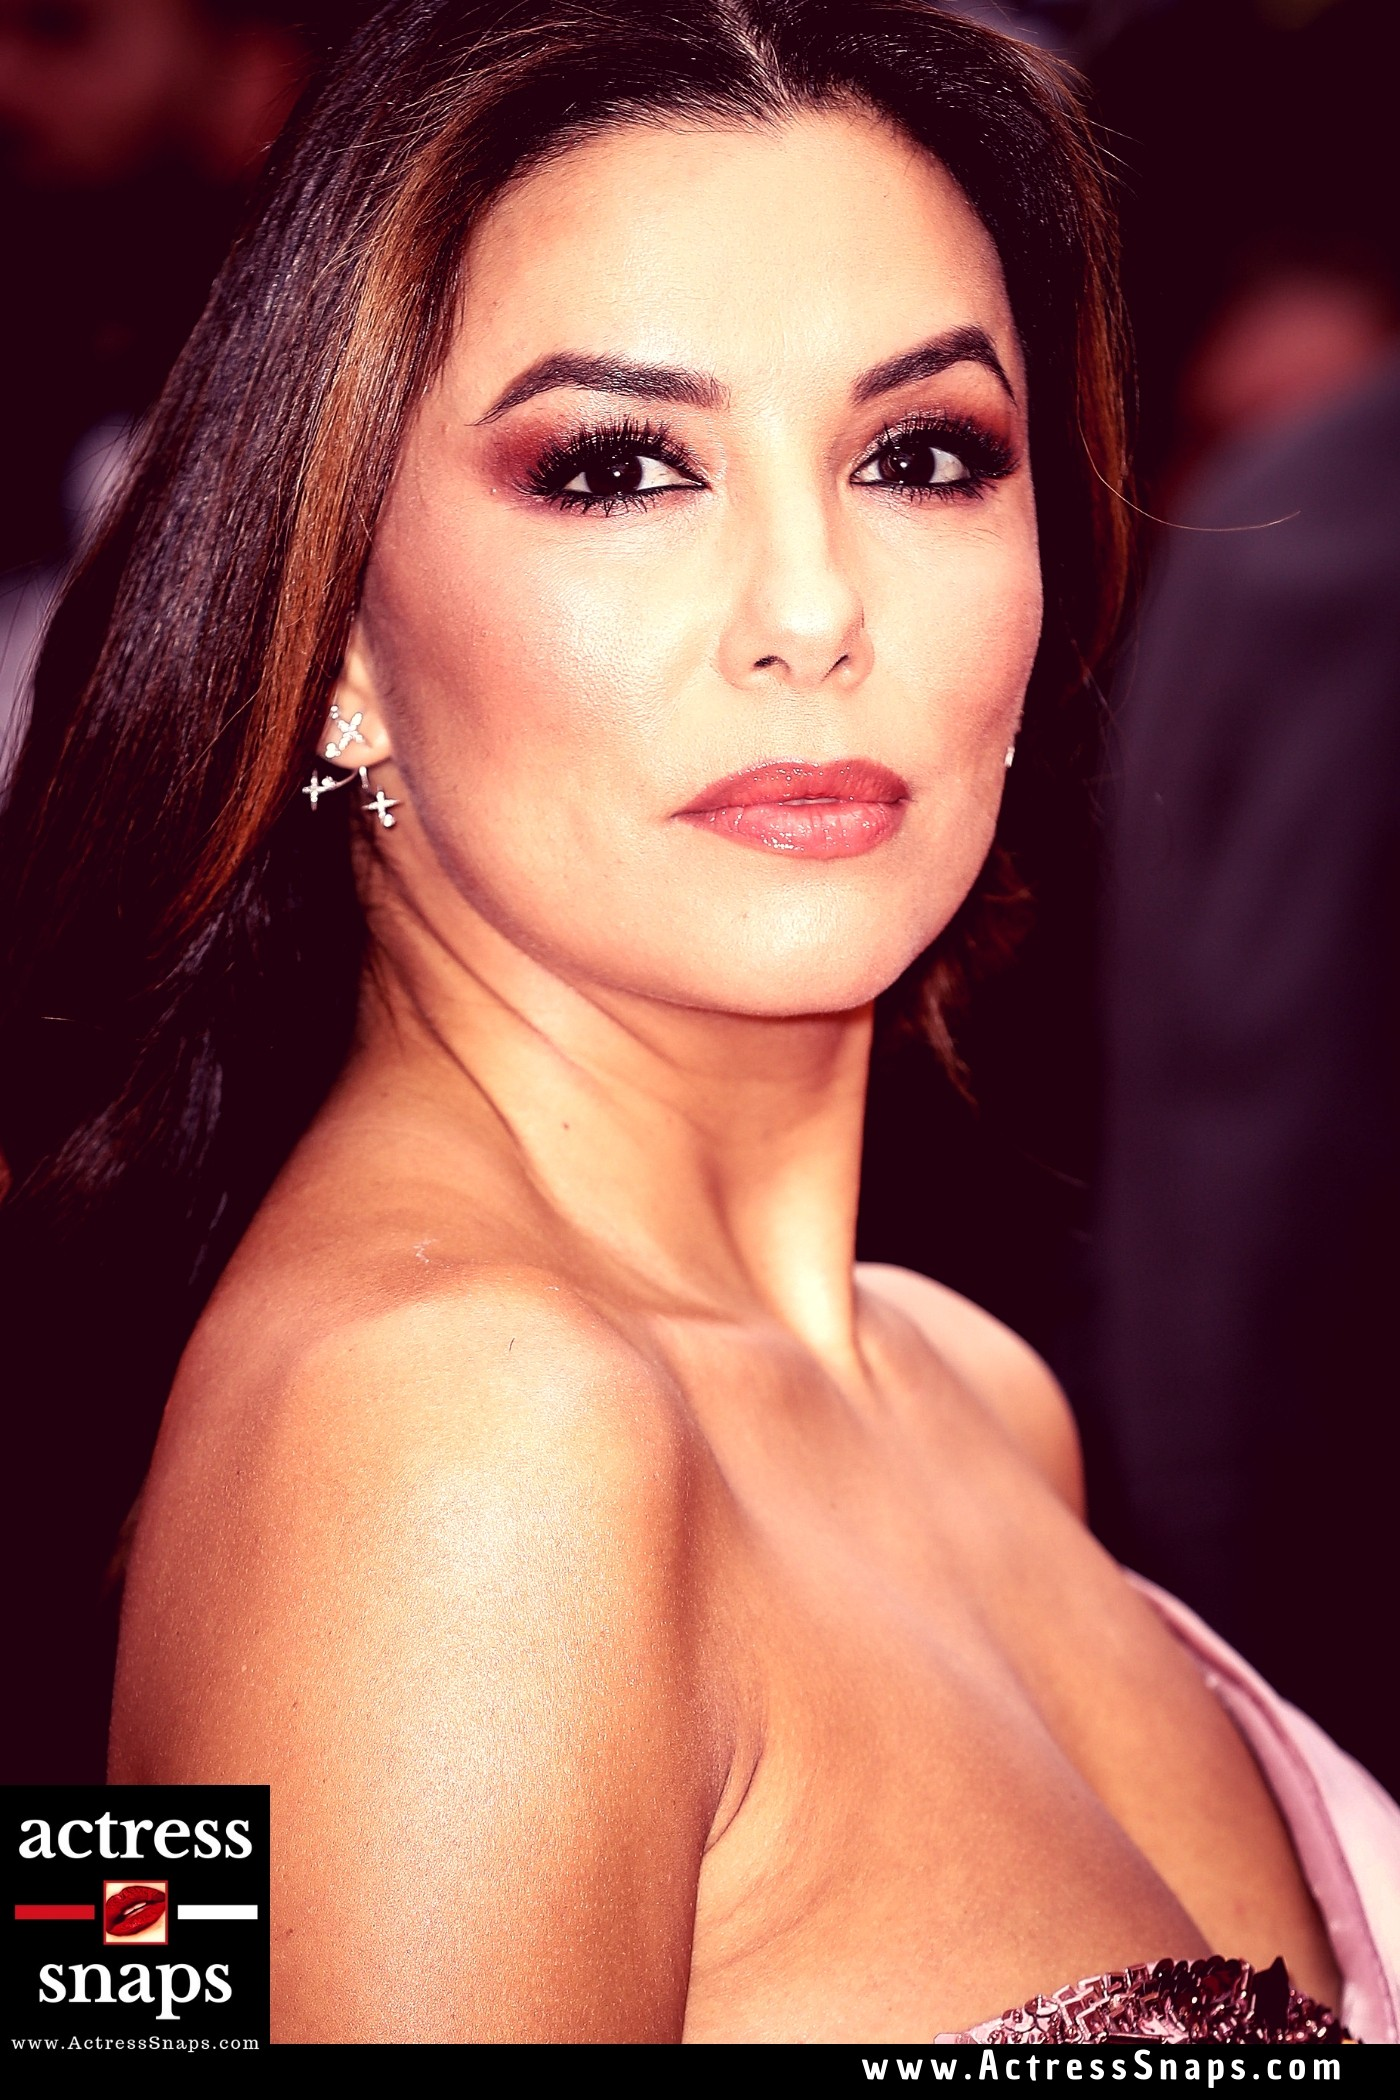 Eva Longoria attends 72nd Cannes Film Festival - Sexy Actress Pictures | Hot Actress Pictures - ActressSnaps.com